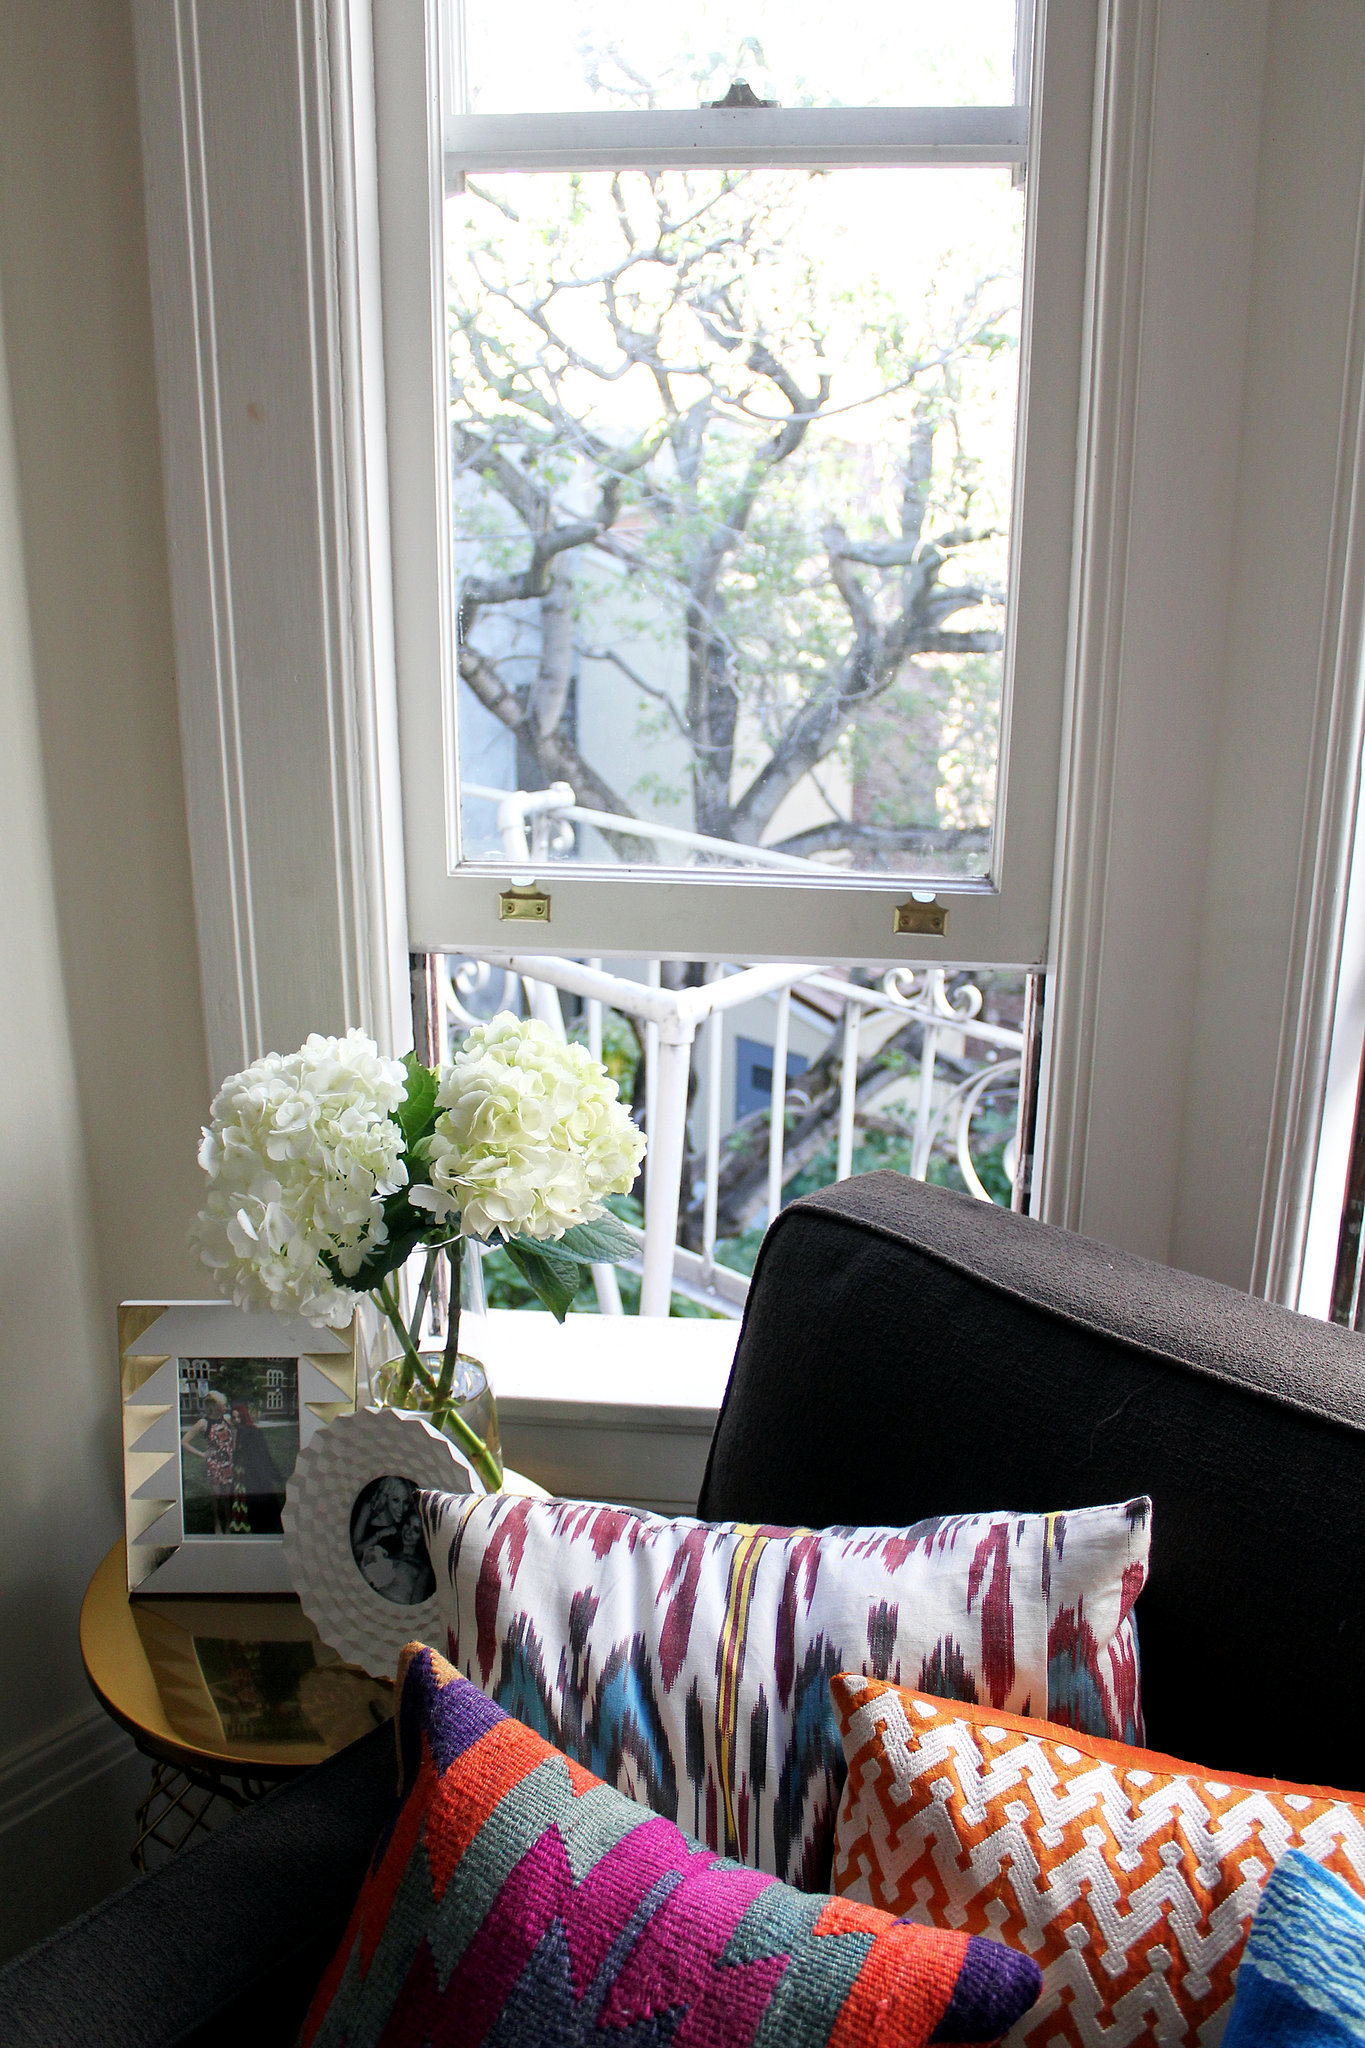 How great are her bright pillows? One piece of advice she has for anyone trying to figure out their decorating style is to start with a basic foundation (a neutral couch, for instance) and add pizzazz through accents.